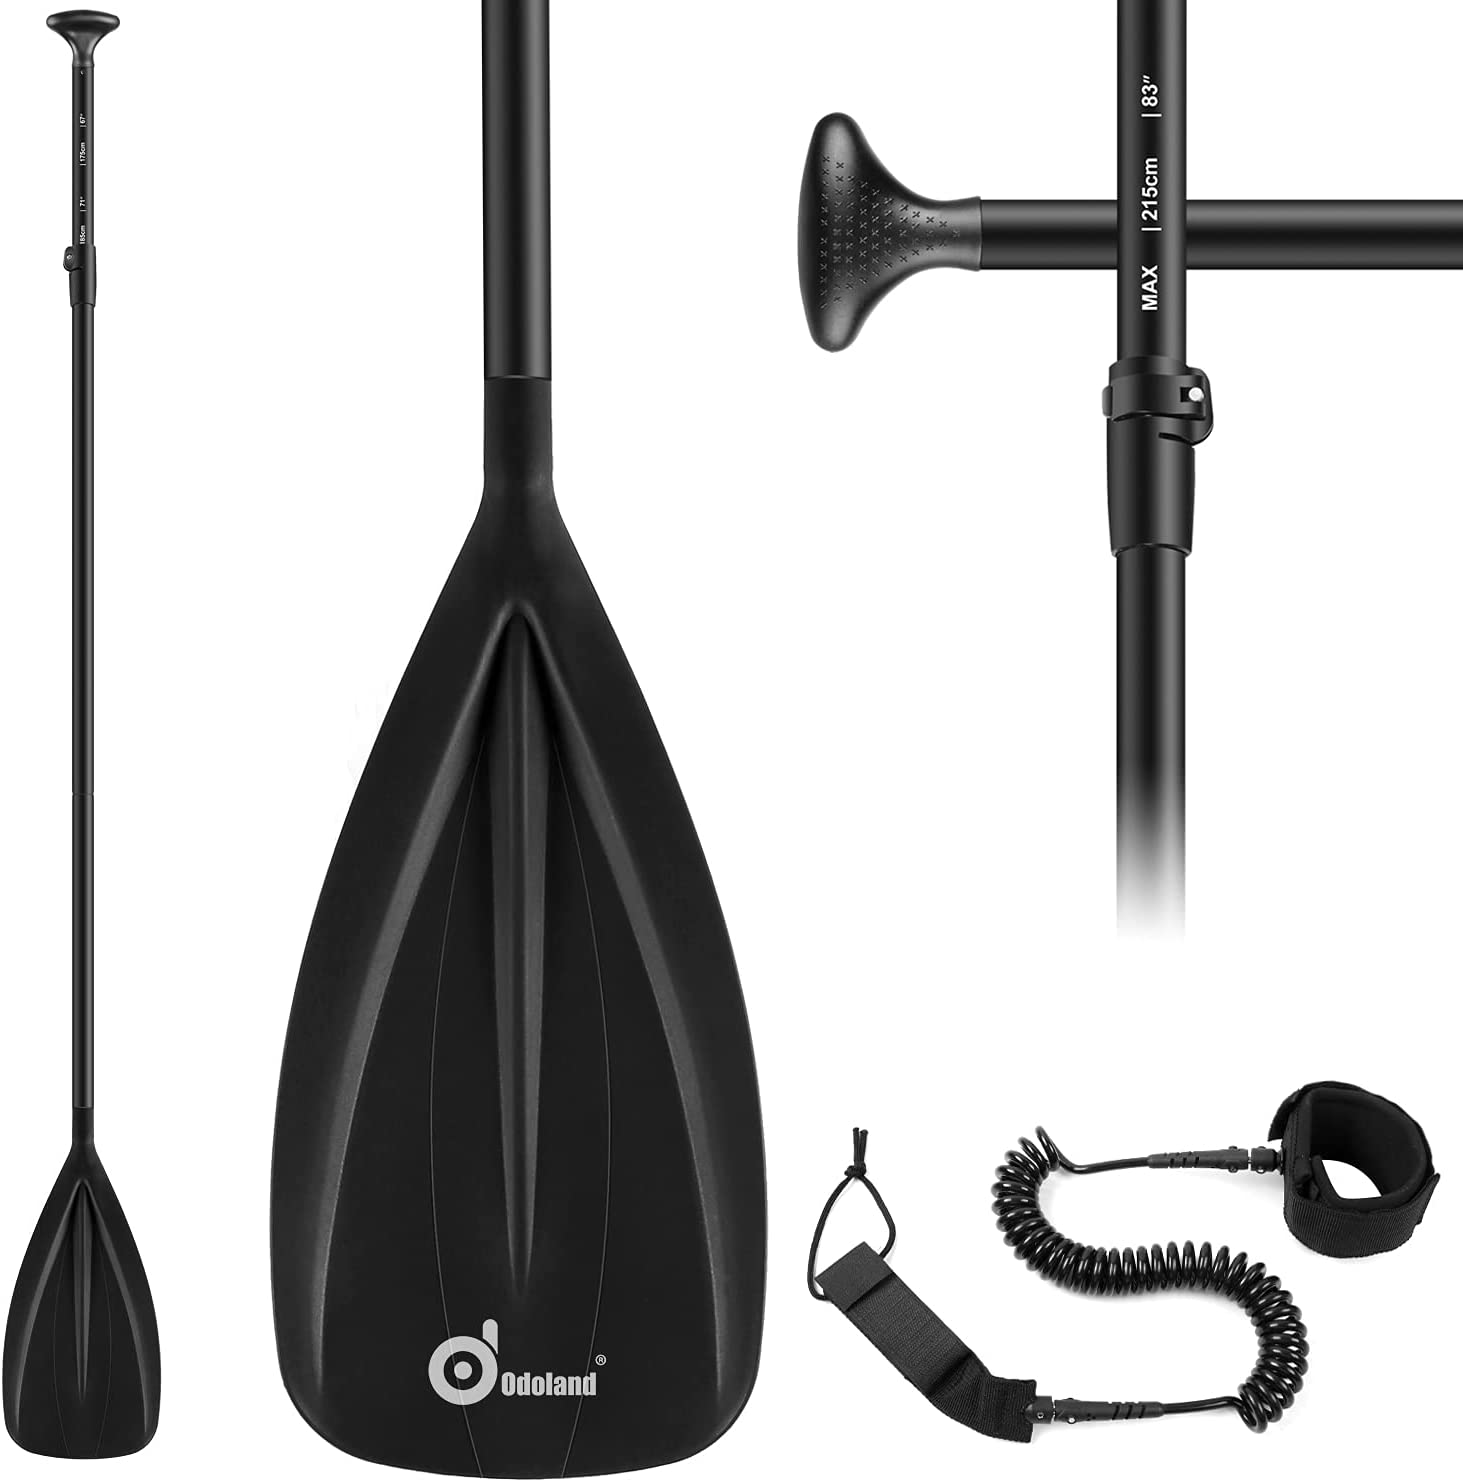 Odoland Alloy Max 50% OFF Elegant SUP Paddle 3 Pieces Up Stand Adjustable Bo